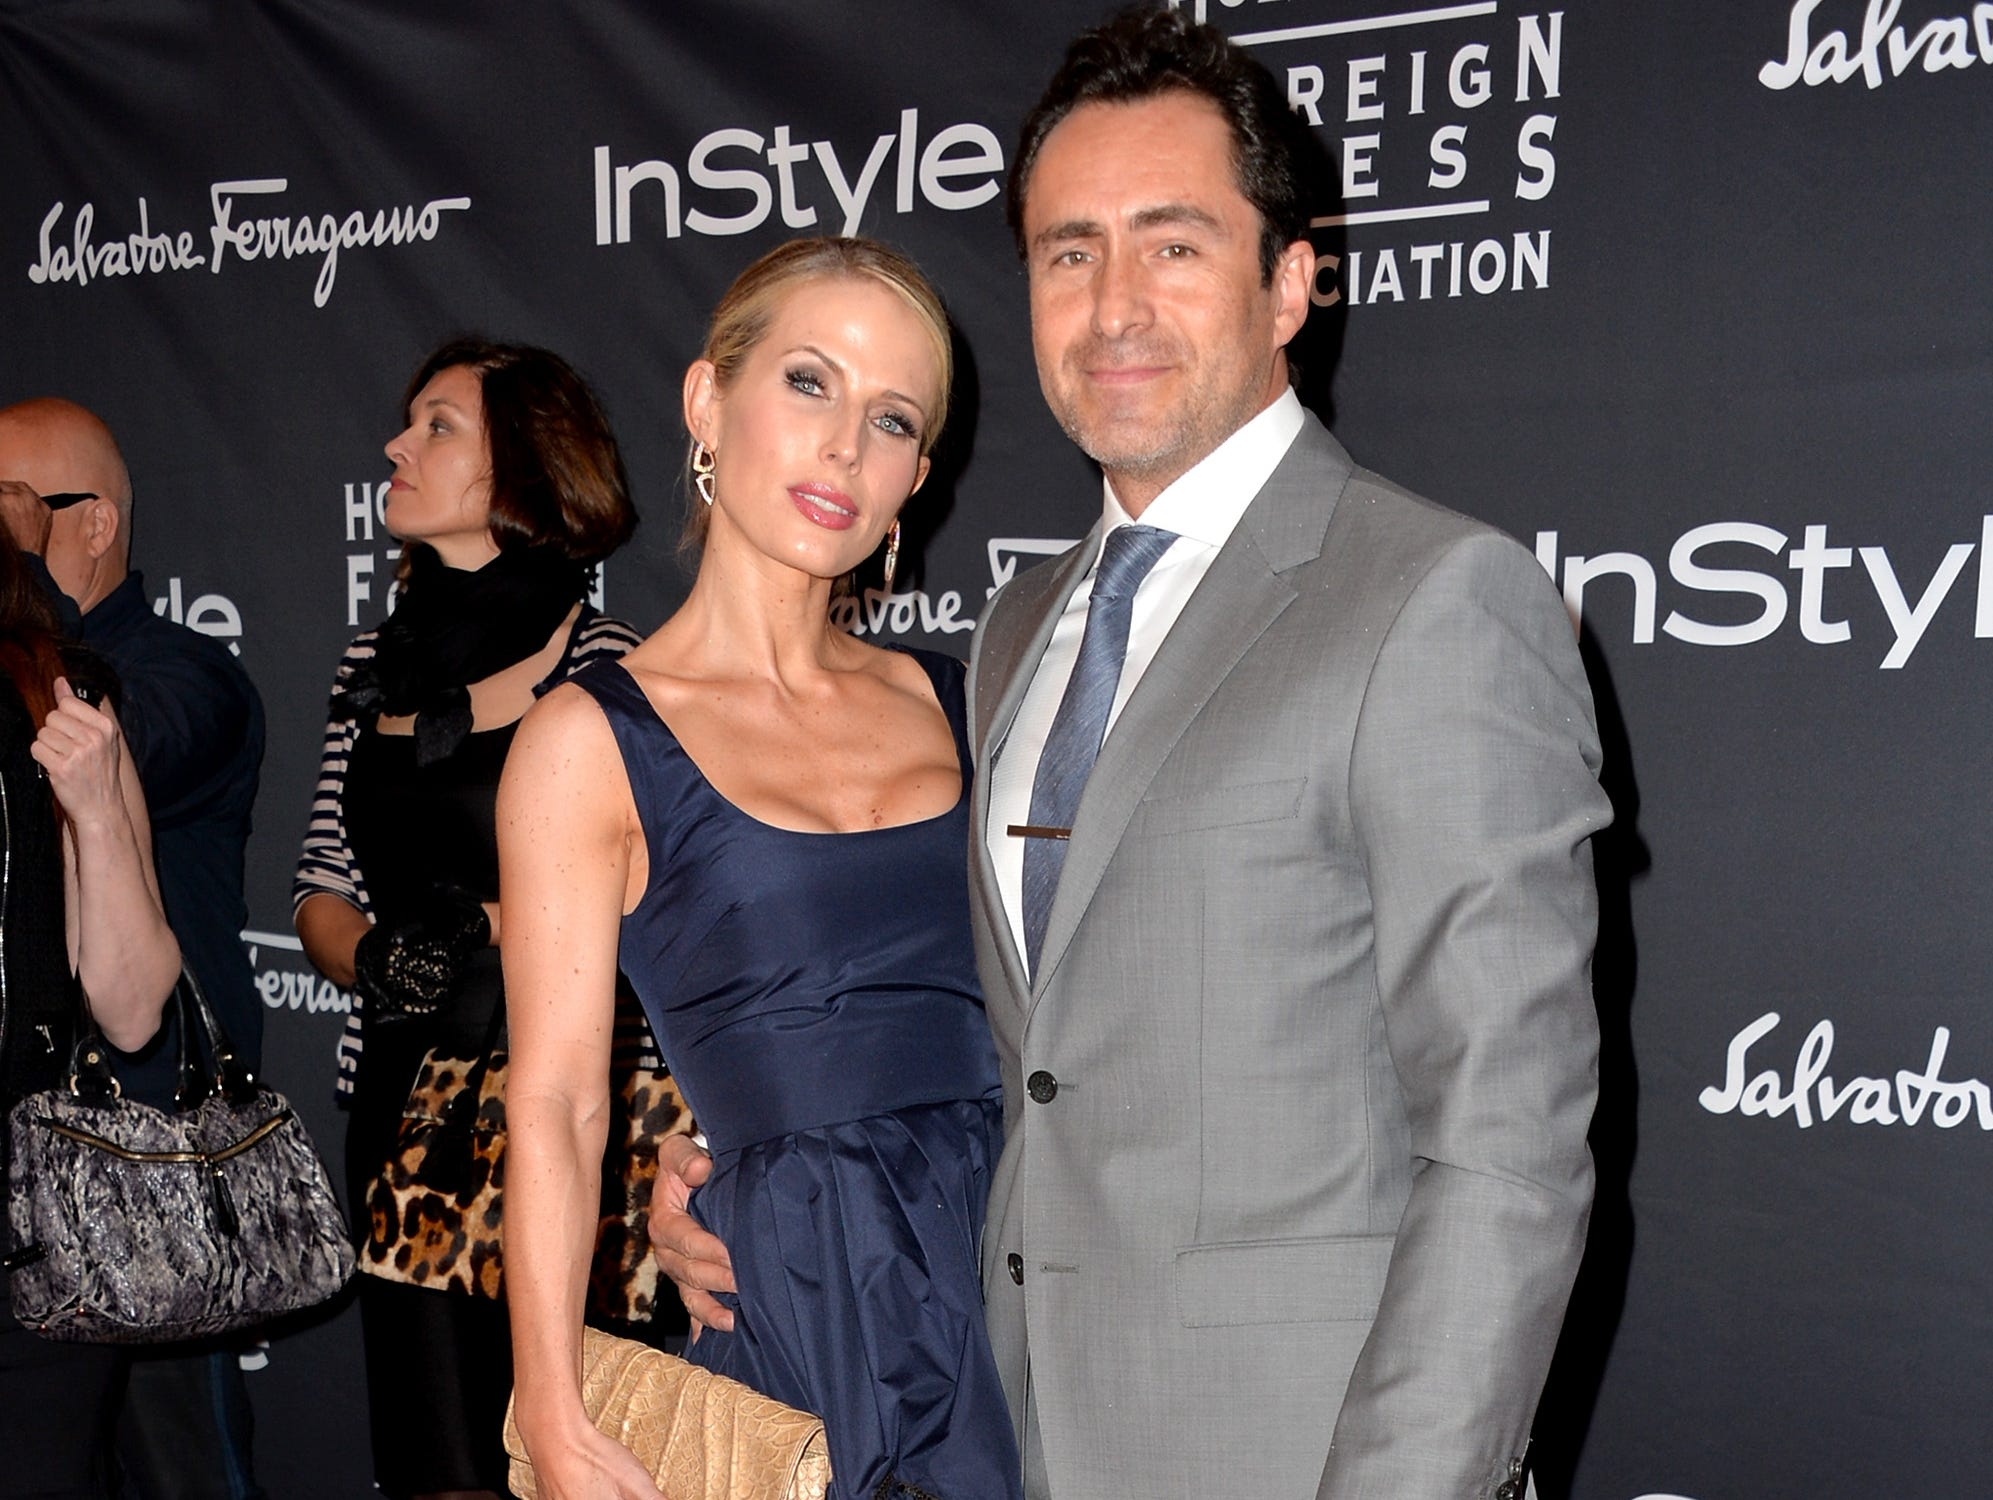 Demian Bichir and Stefanie Sherk arrive at the TIFF HFPA / InStyle Party during the 2013 Toronto International Film Festival at Windsor Arms Hotel on September 9, 2013, in Toronto